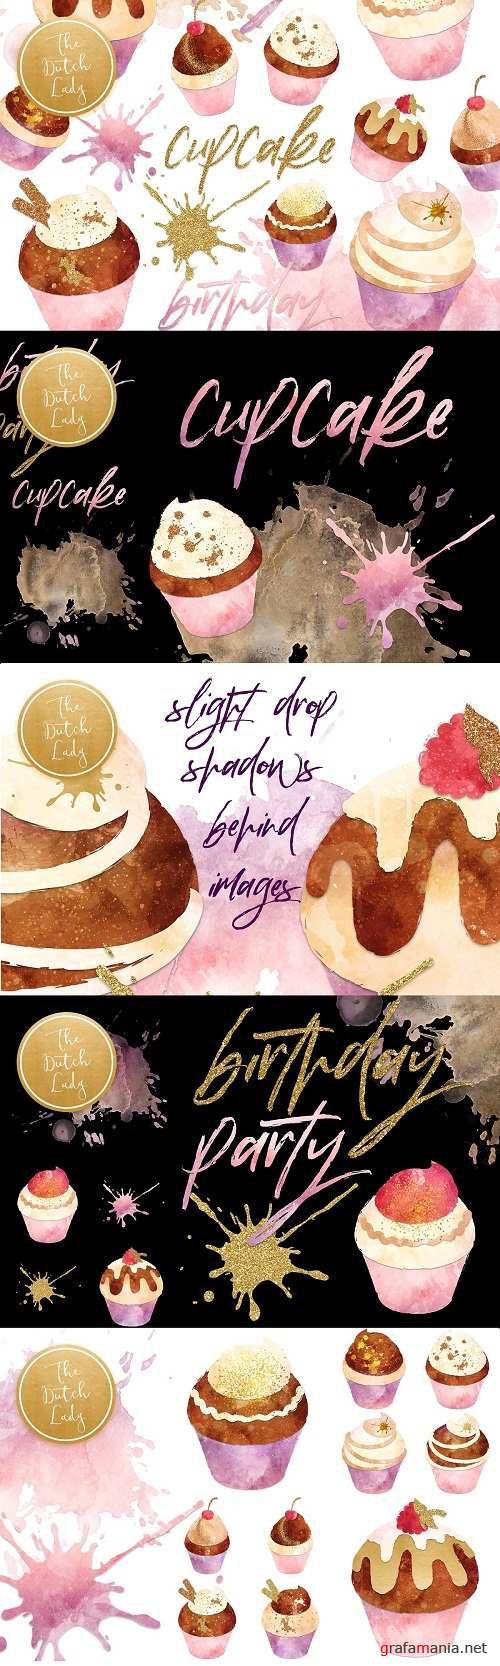 Cupcake Clipart Set in Grunge Style 3370002